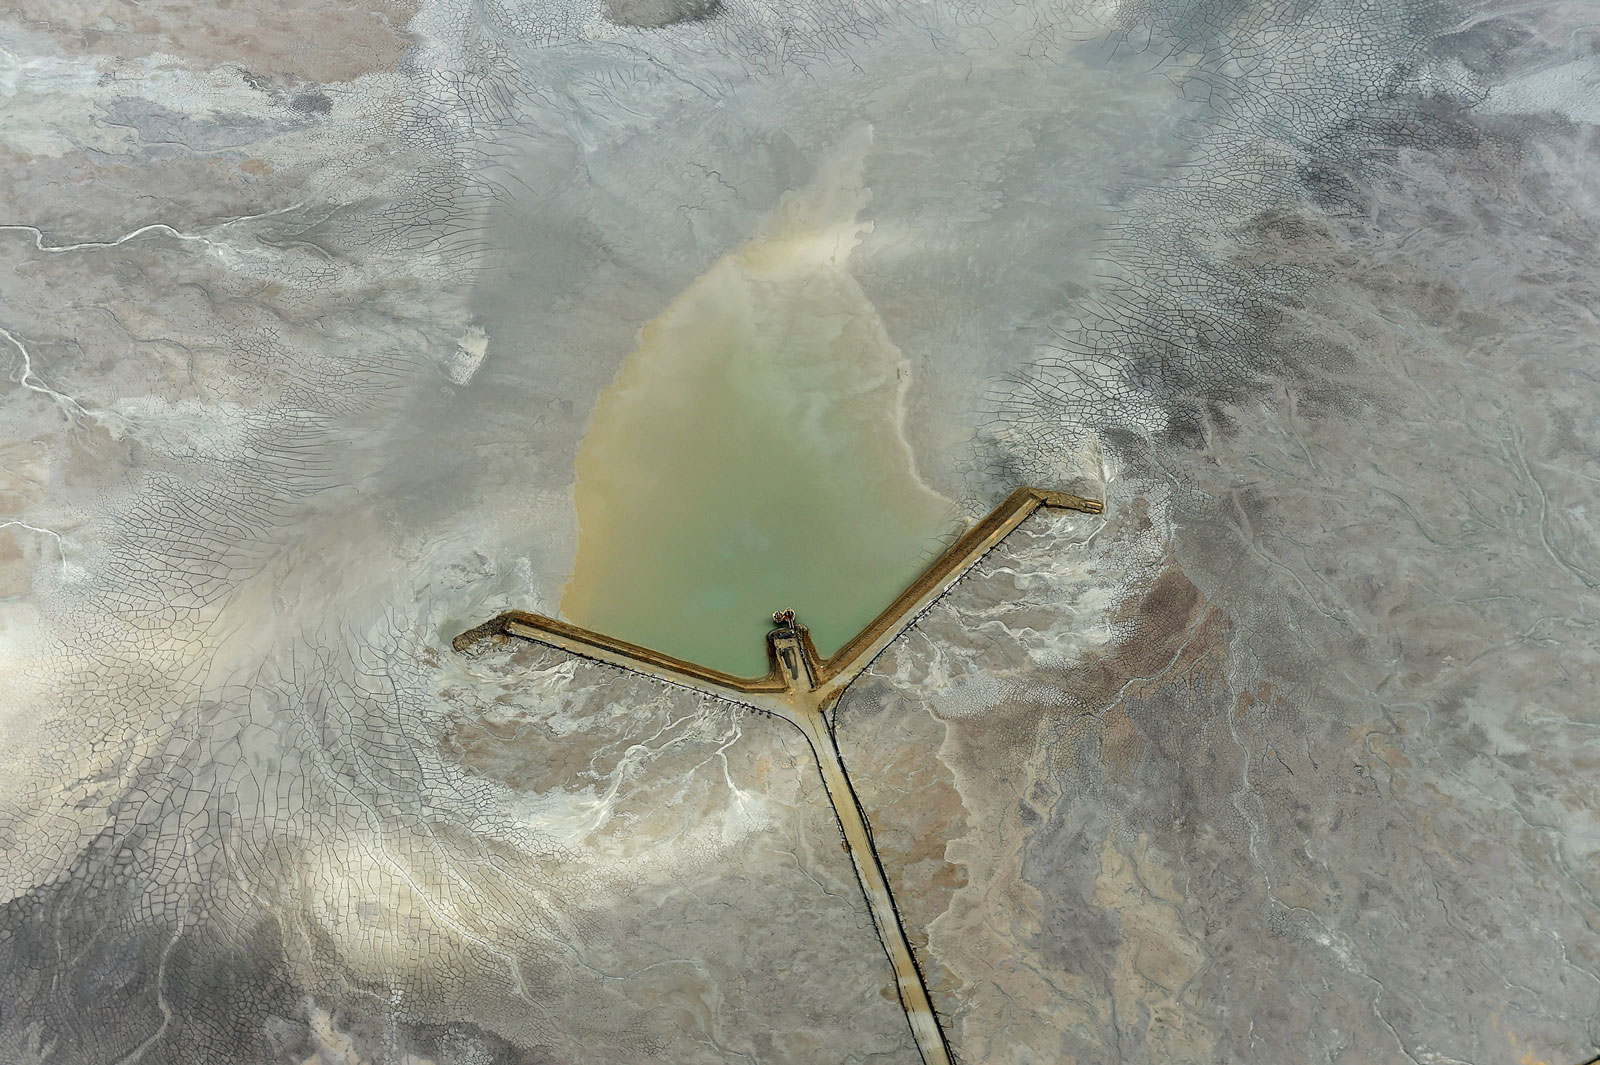 A road leads to the center of a tailings dam at the Fimiston Open Pit mine, in Kalgoorlie, Australia